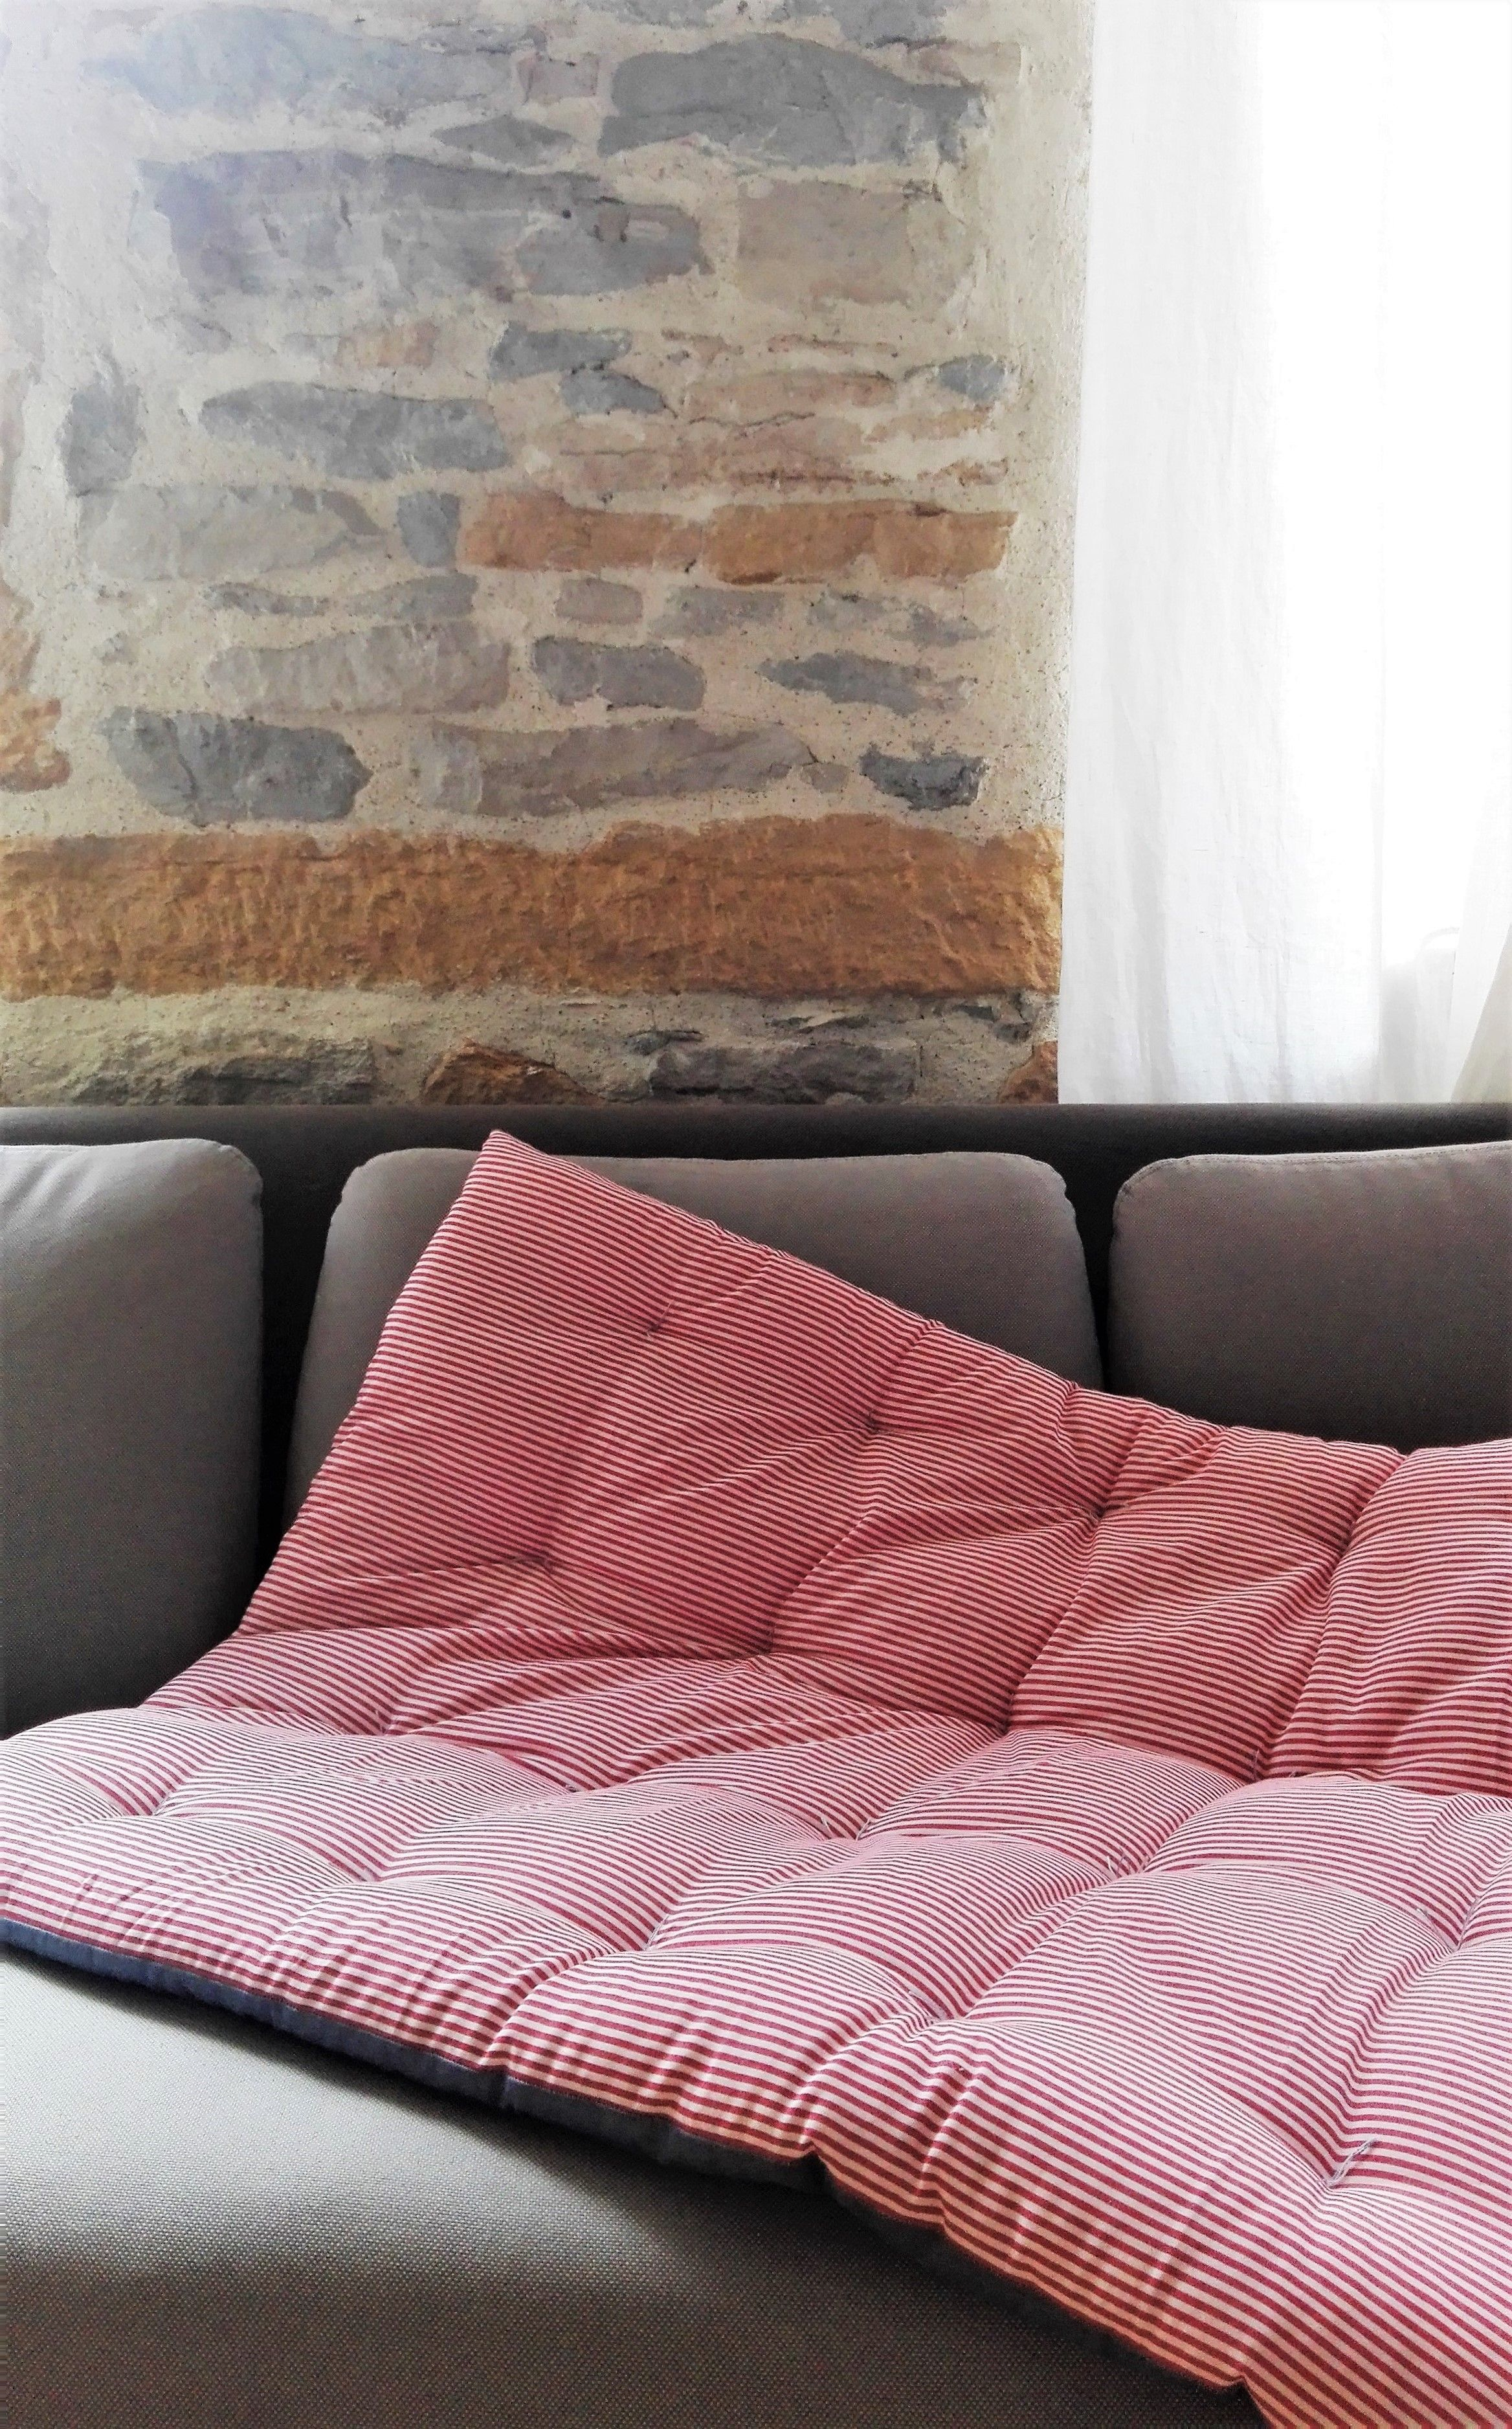 edredon matelas nomade canap fait main minimum le shop pinterest matelas fait main et la. Black Bedroom Furniture Sets. Home Design Ideas